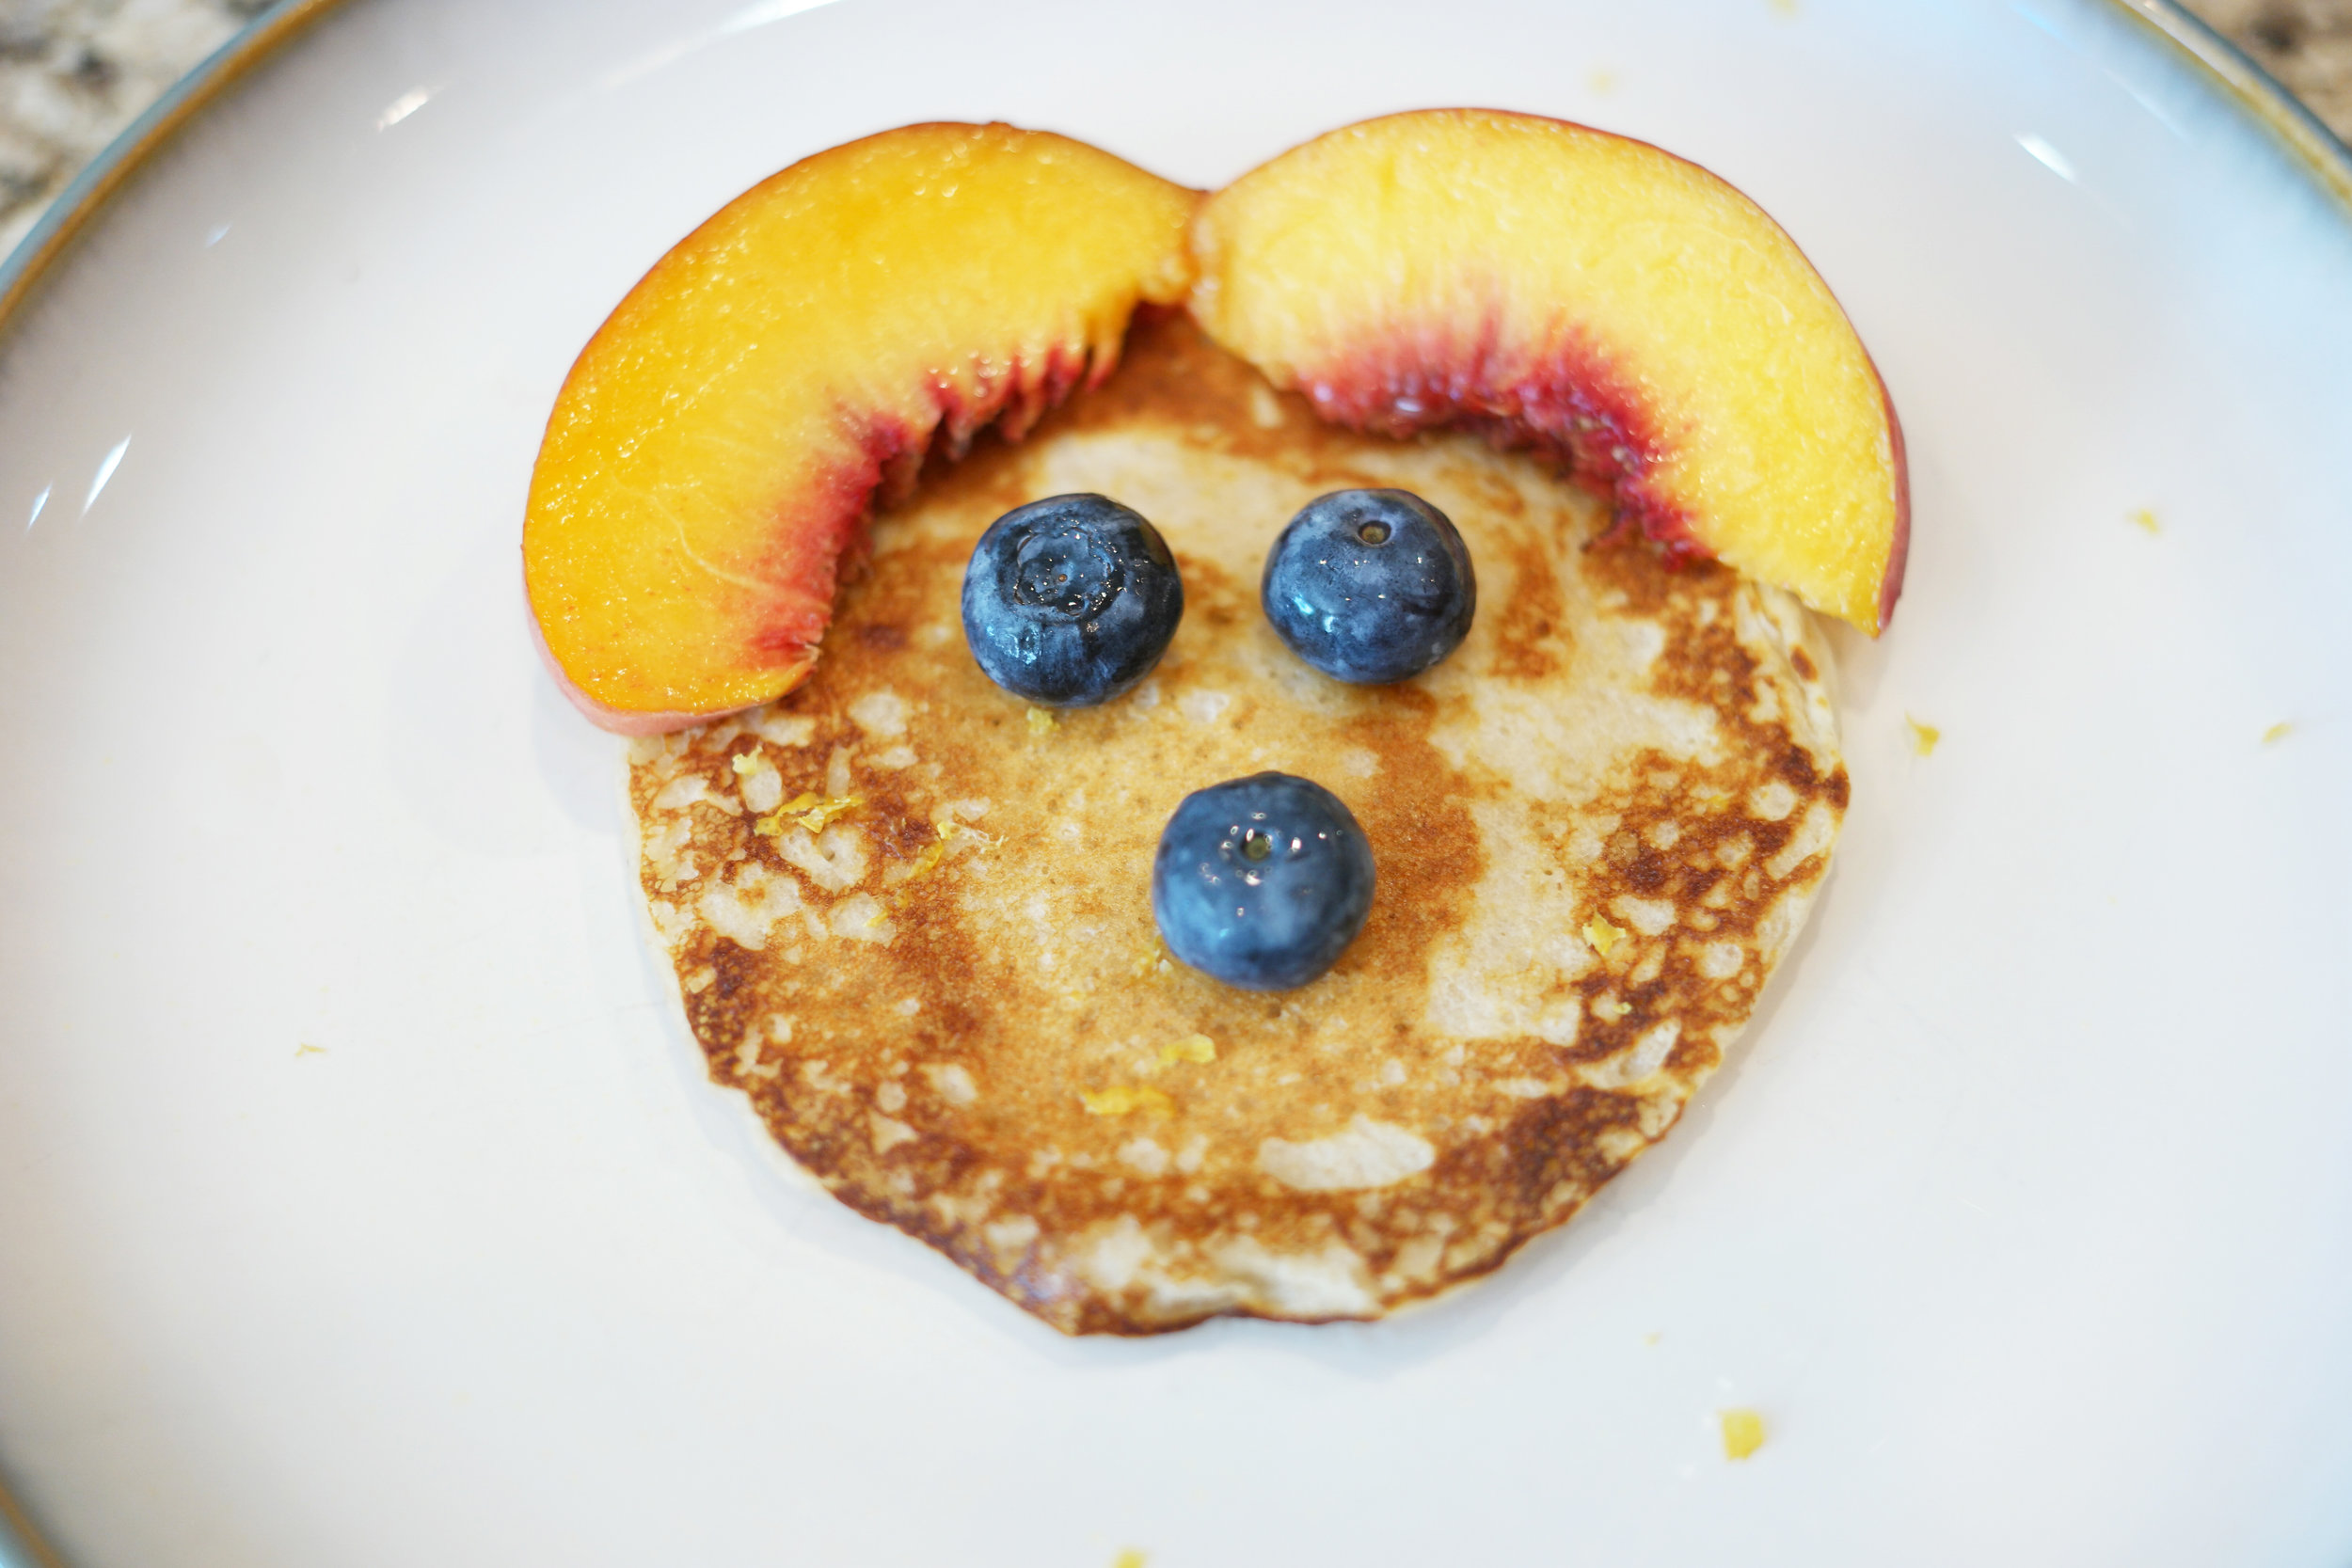 Pic of pancake face with peaches ears